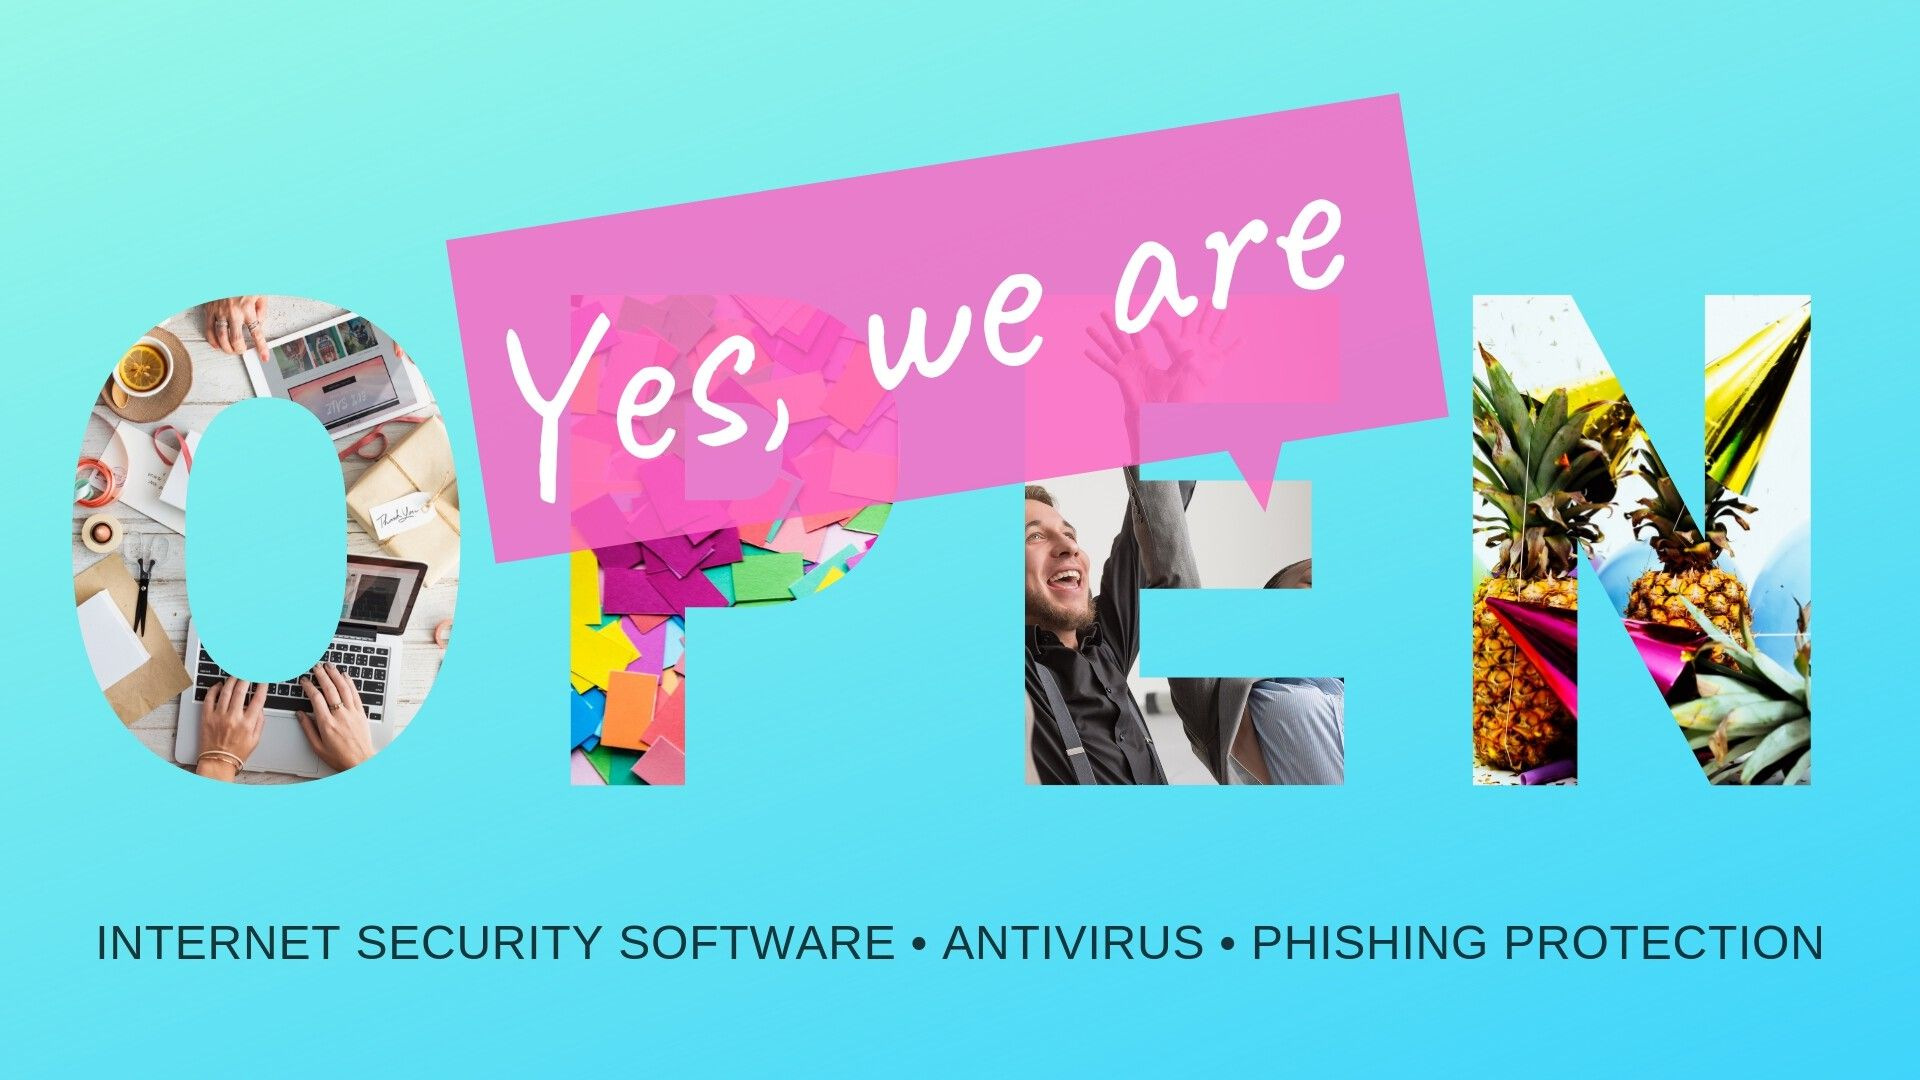 Our Internet Security Online Store is Now Open. Antivirus, Phishing Protection and More!